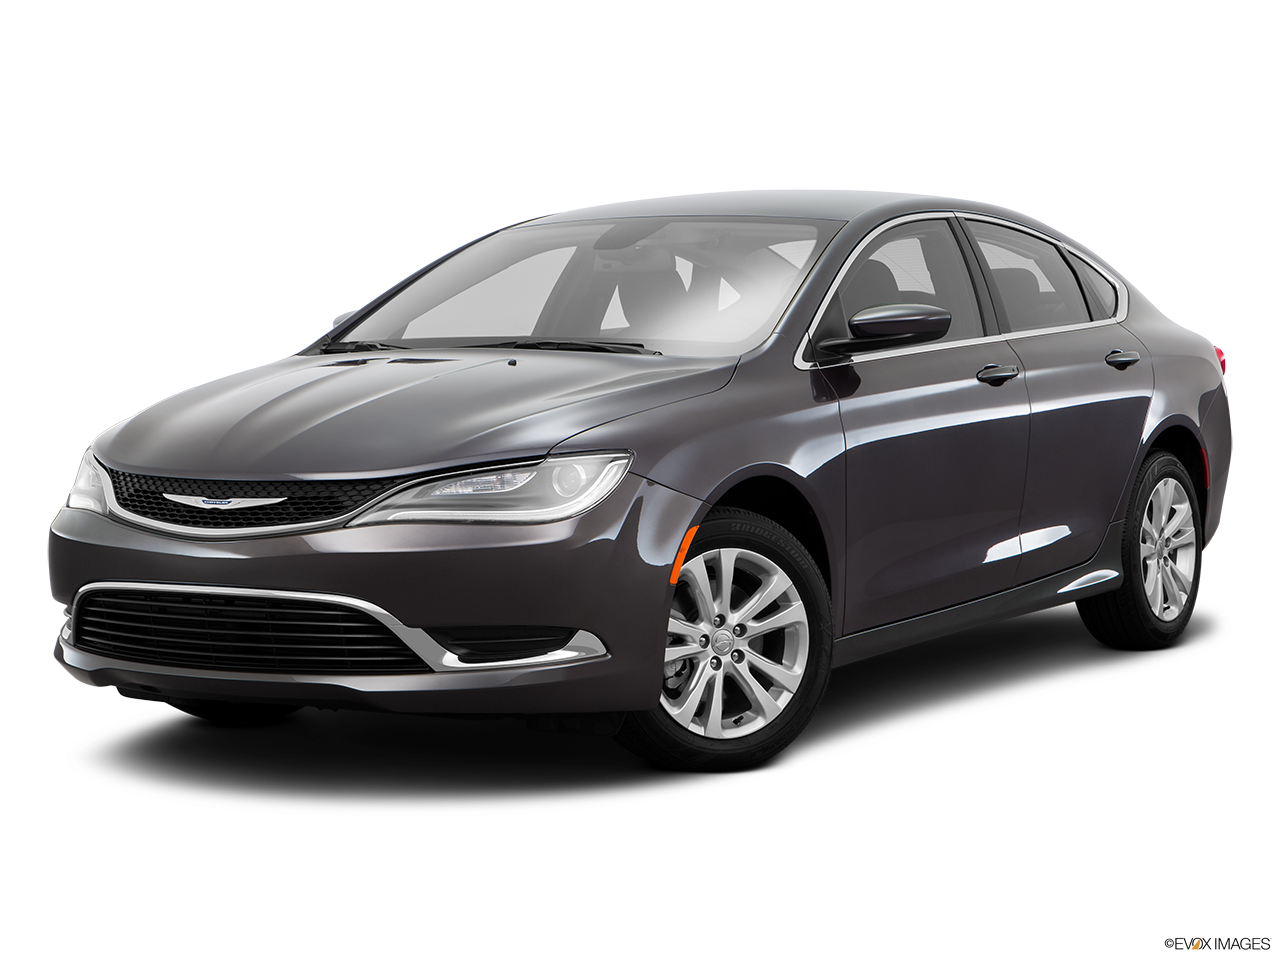 Test Drive A 2016 Chrysler 200 at Sherman Chrysler Dodge Jeep RAM Chicago